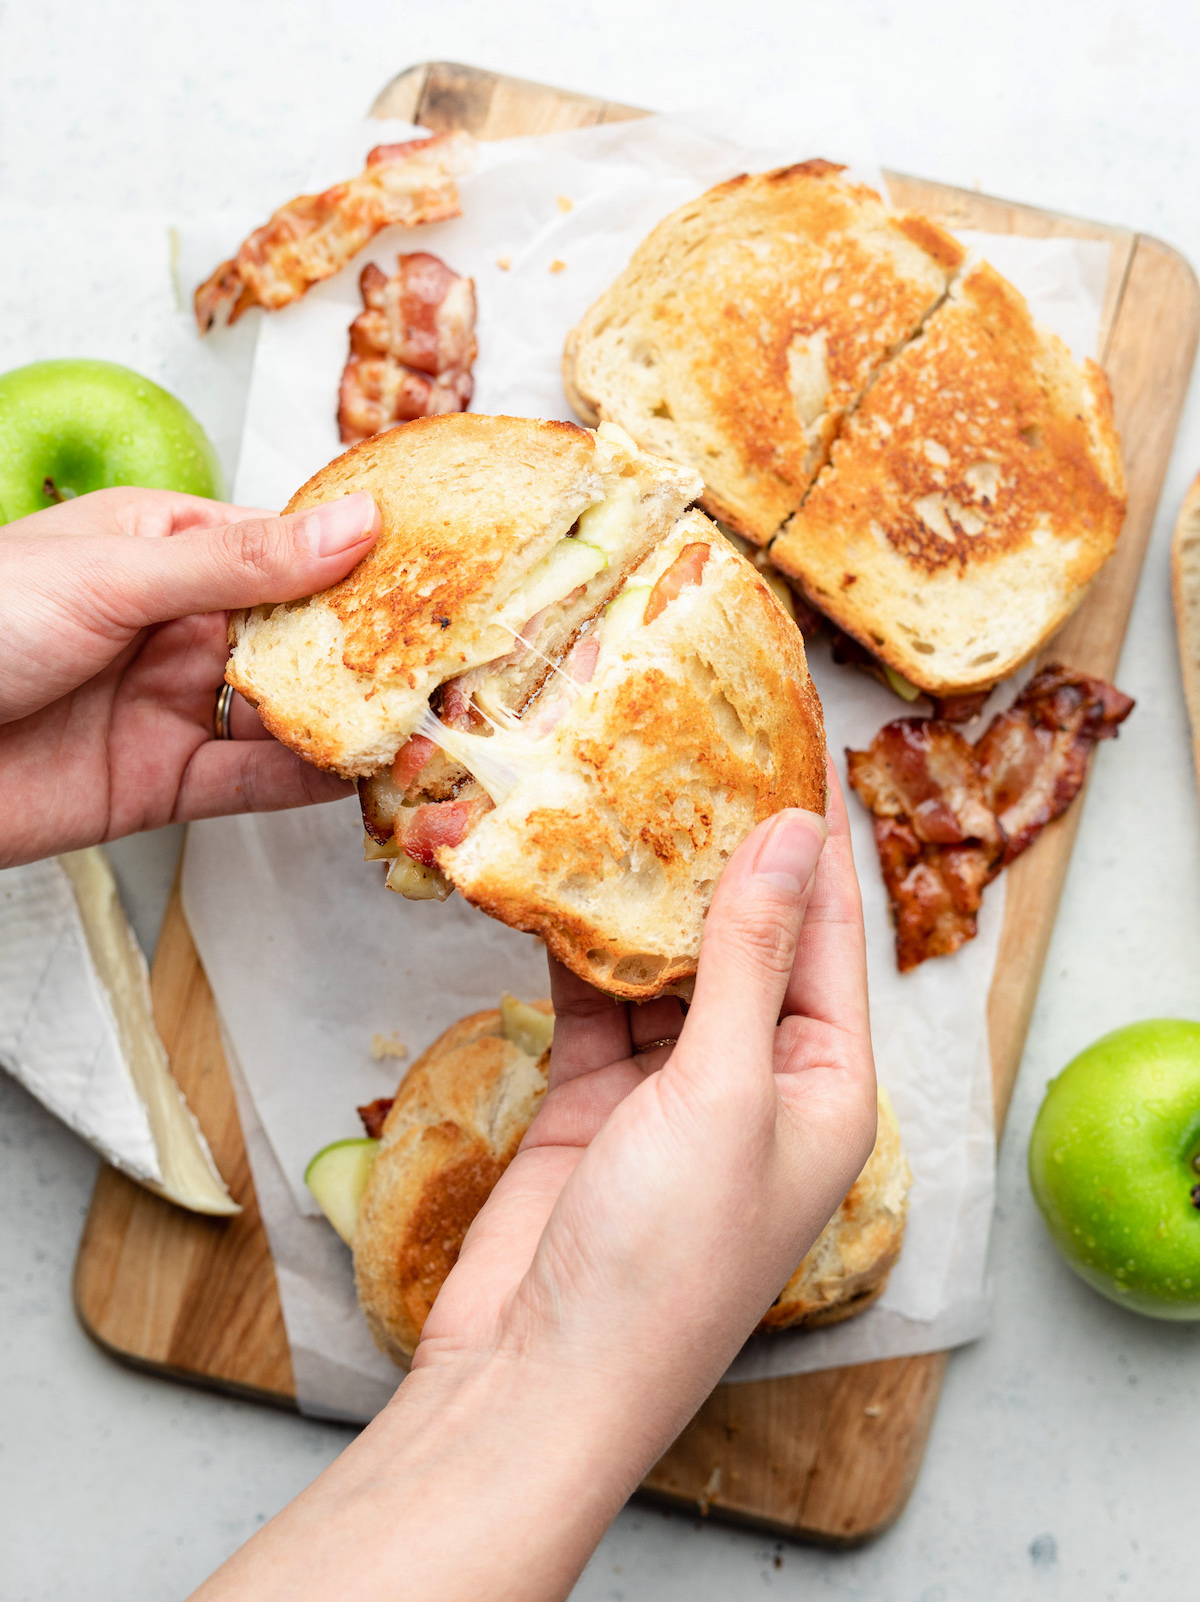 Hands pulling two halves of a grilled cheese sandwich apart.